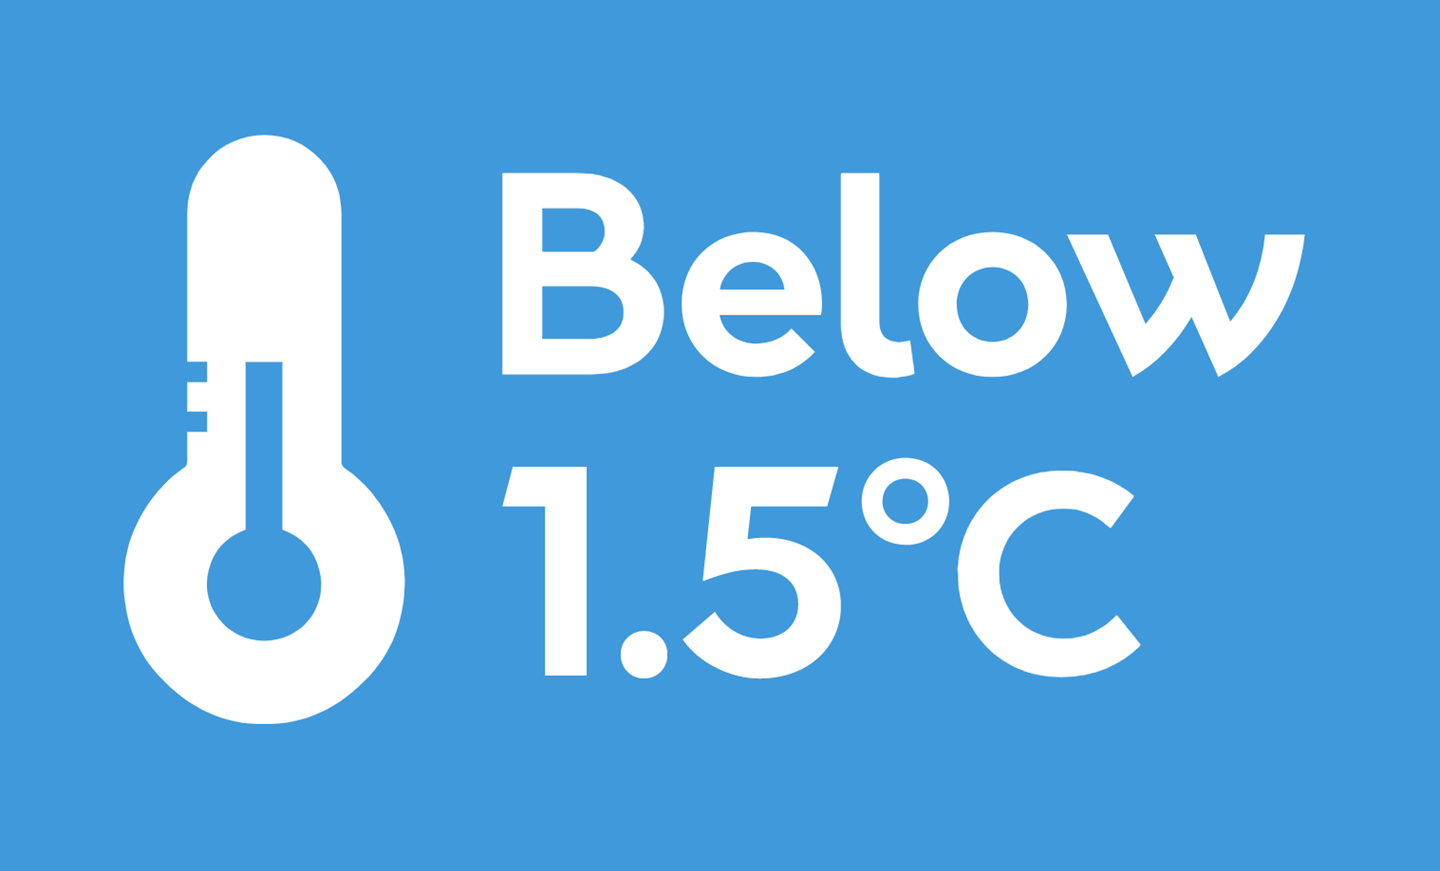 Below 2 degrees